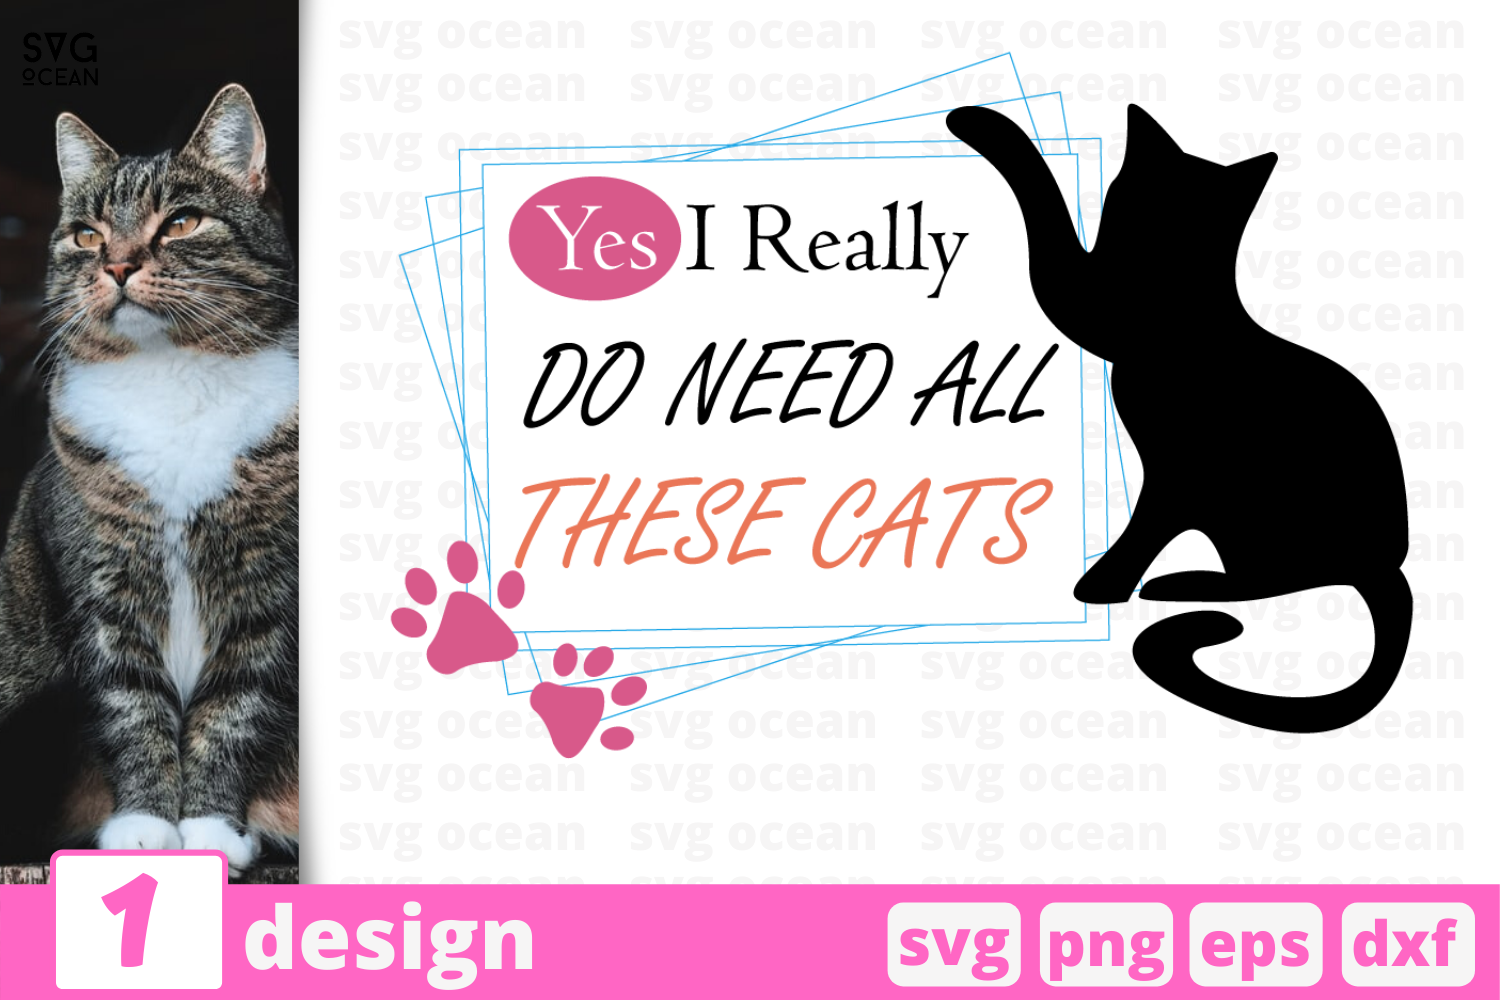 Download Free These Cats Graphic By Svgocean Creative Fabrica for Cricut Explore, Silhouette and other cutting machines.